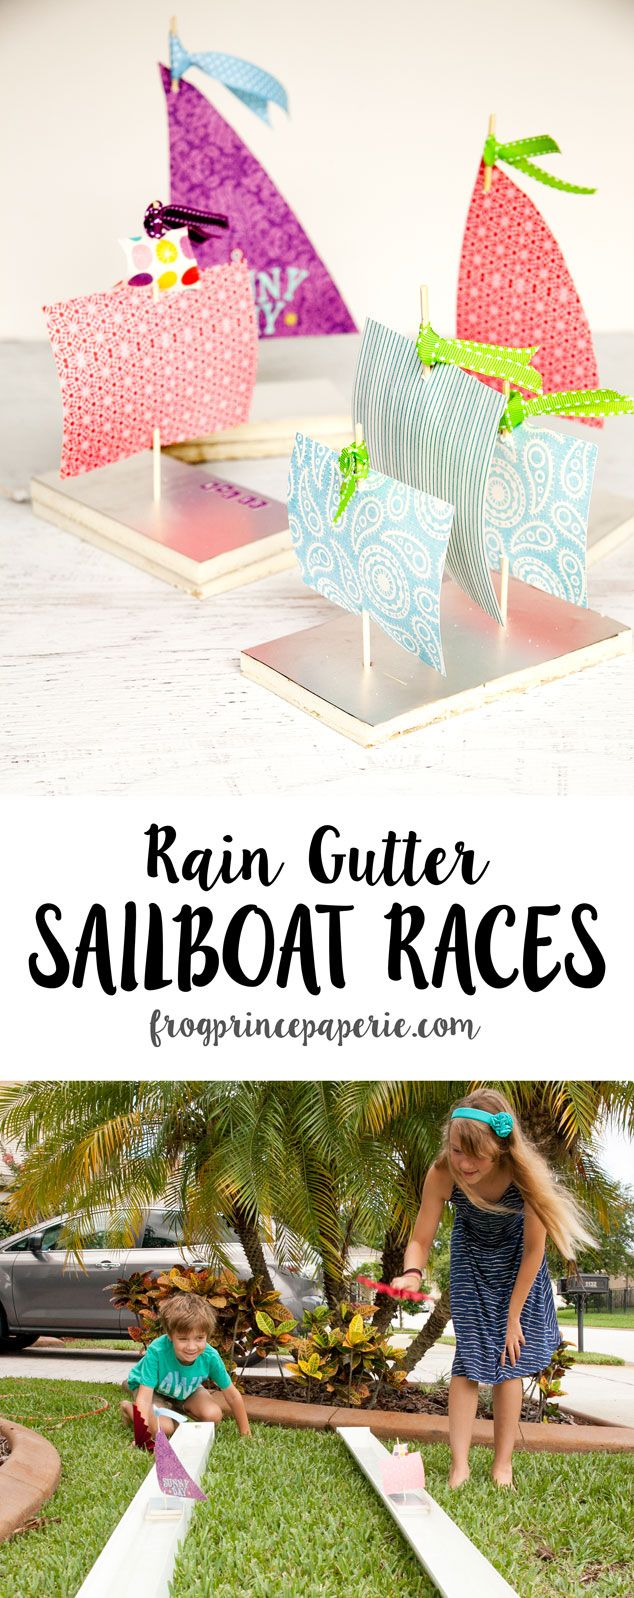 "A few years ago, my friend Nikki at Tikkido.com held a wonderfully styled ""Raingutter Regatta"" for her kids in the backyard. It was totally charming! Loved it! The idea of using rain gutters for racing has stuck with me, and I've used the idea for several school activities. What is really wonderful about this activity ...continue reading"